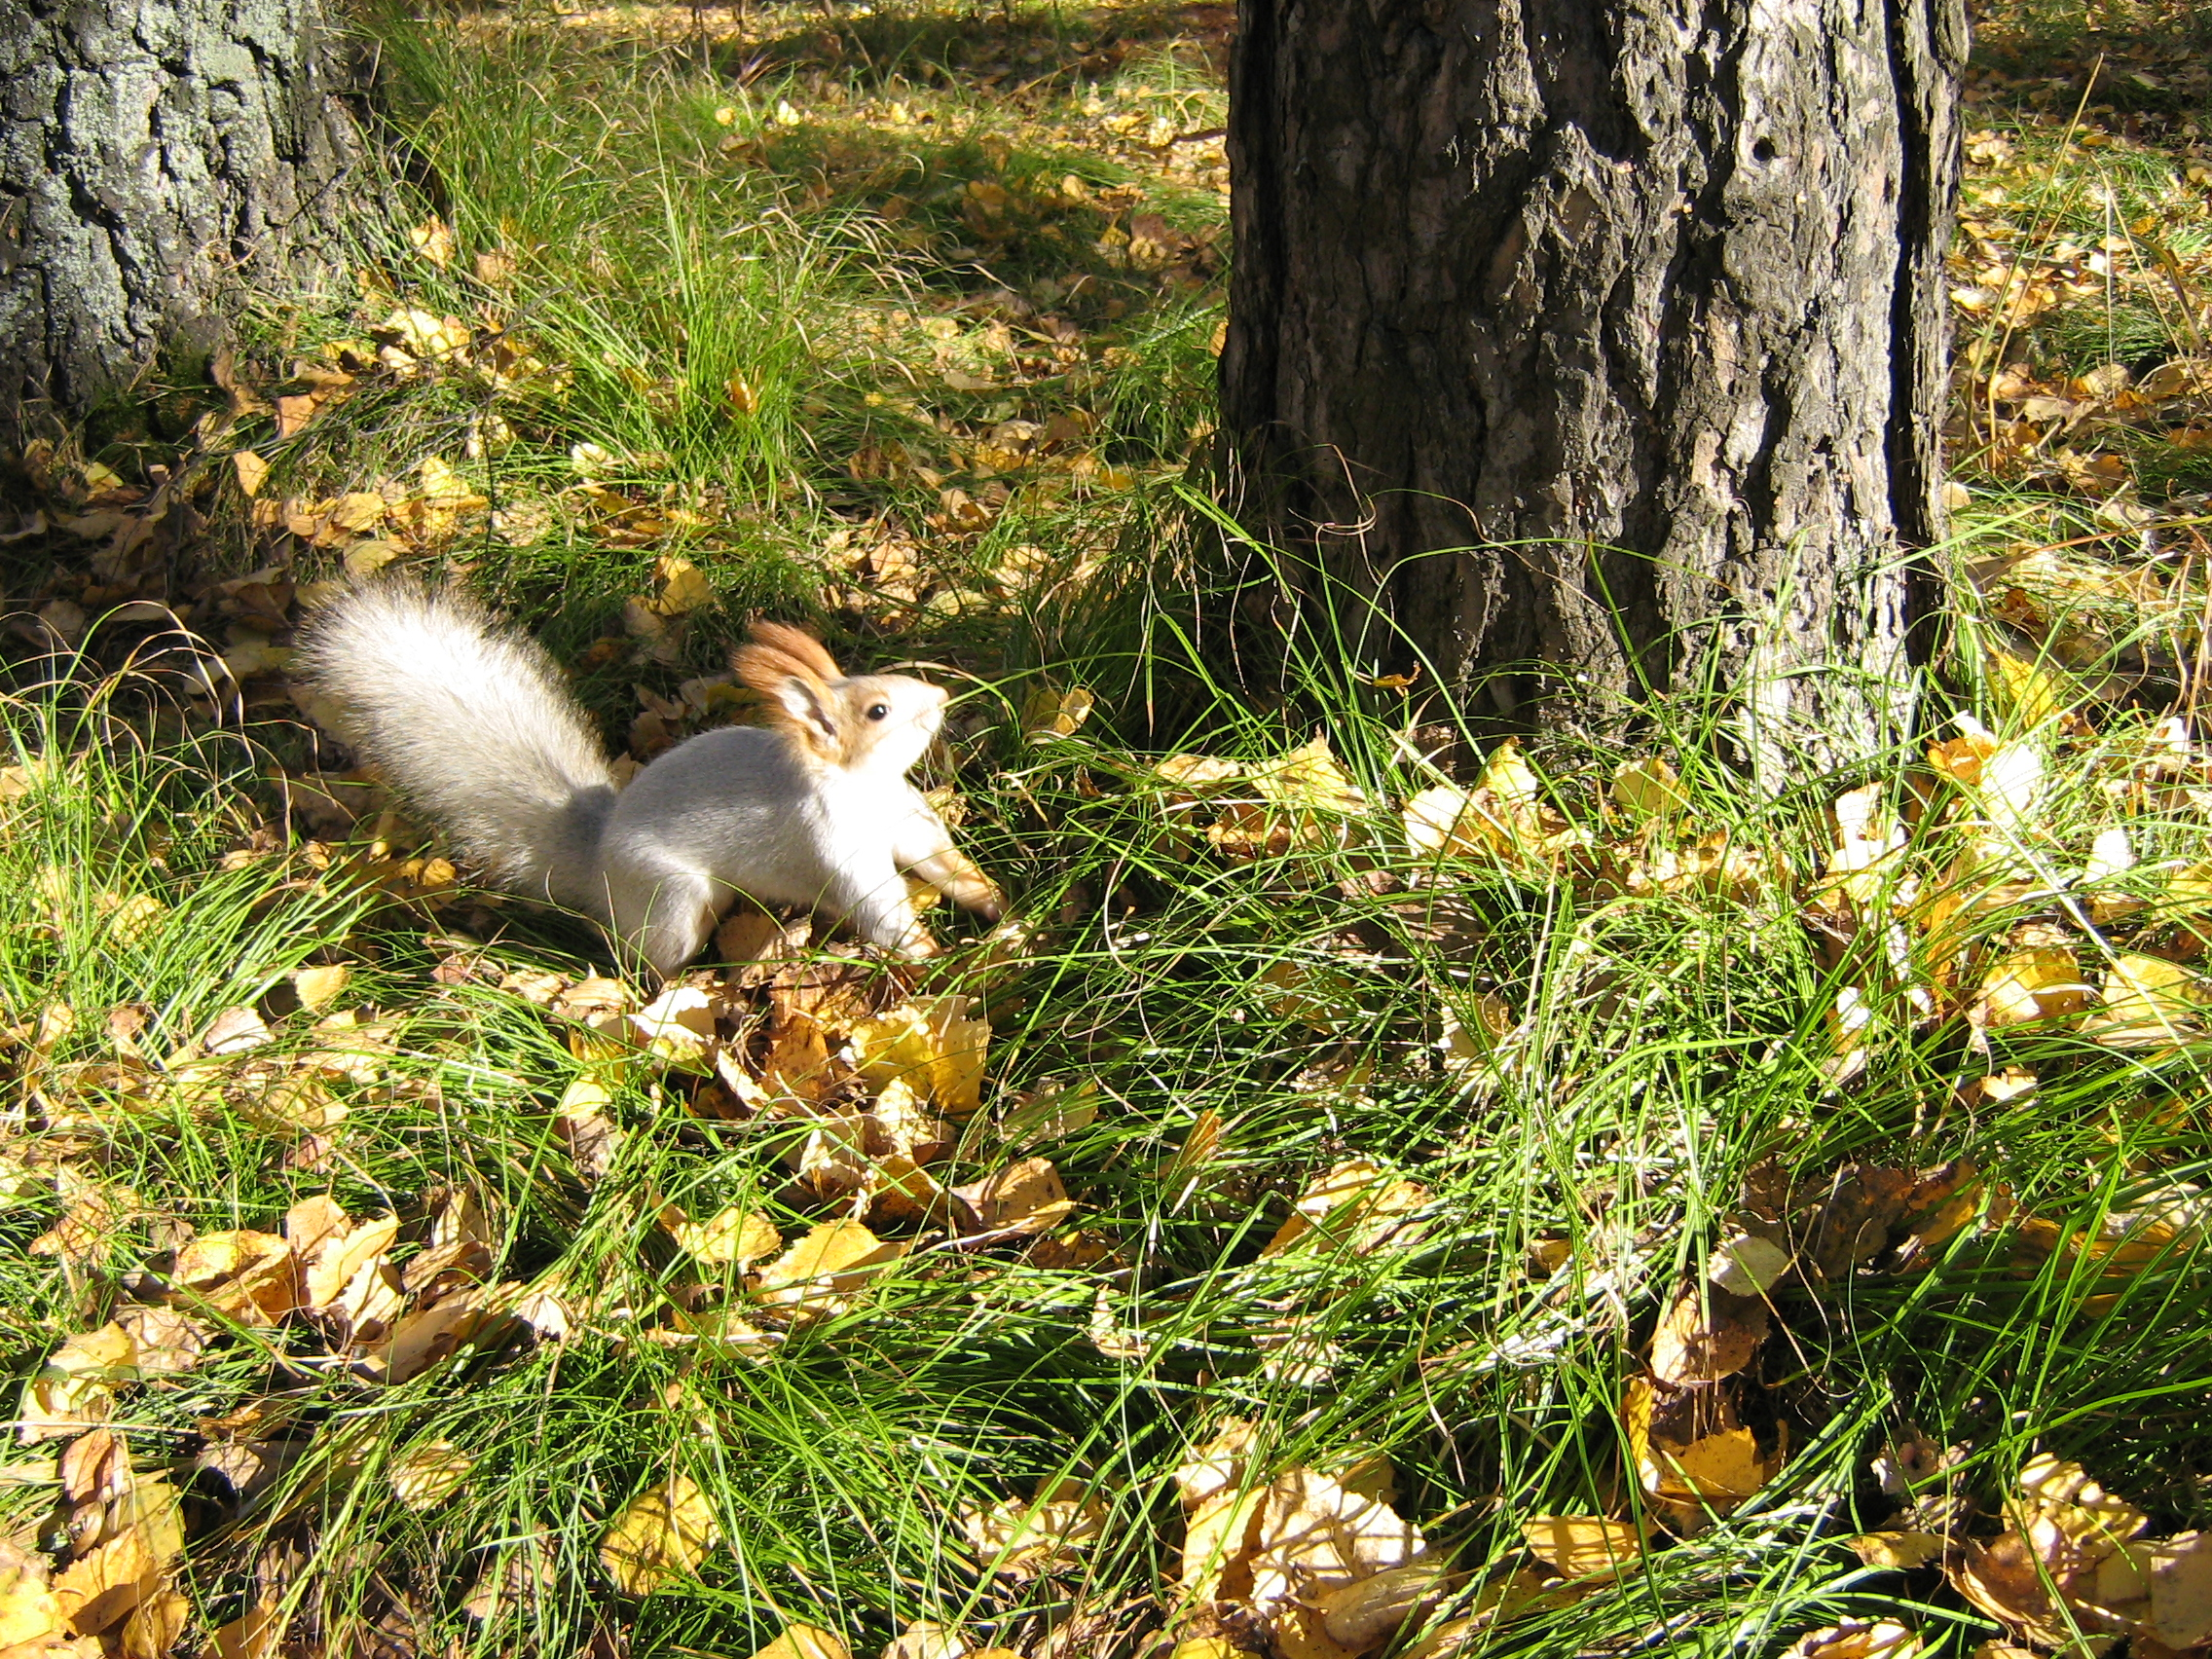 Autumn in Akademgorodok. A squirrel